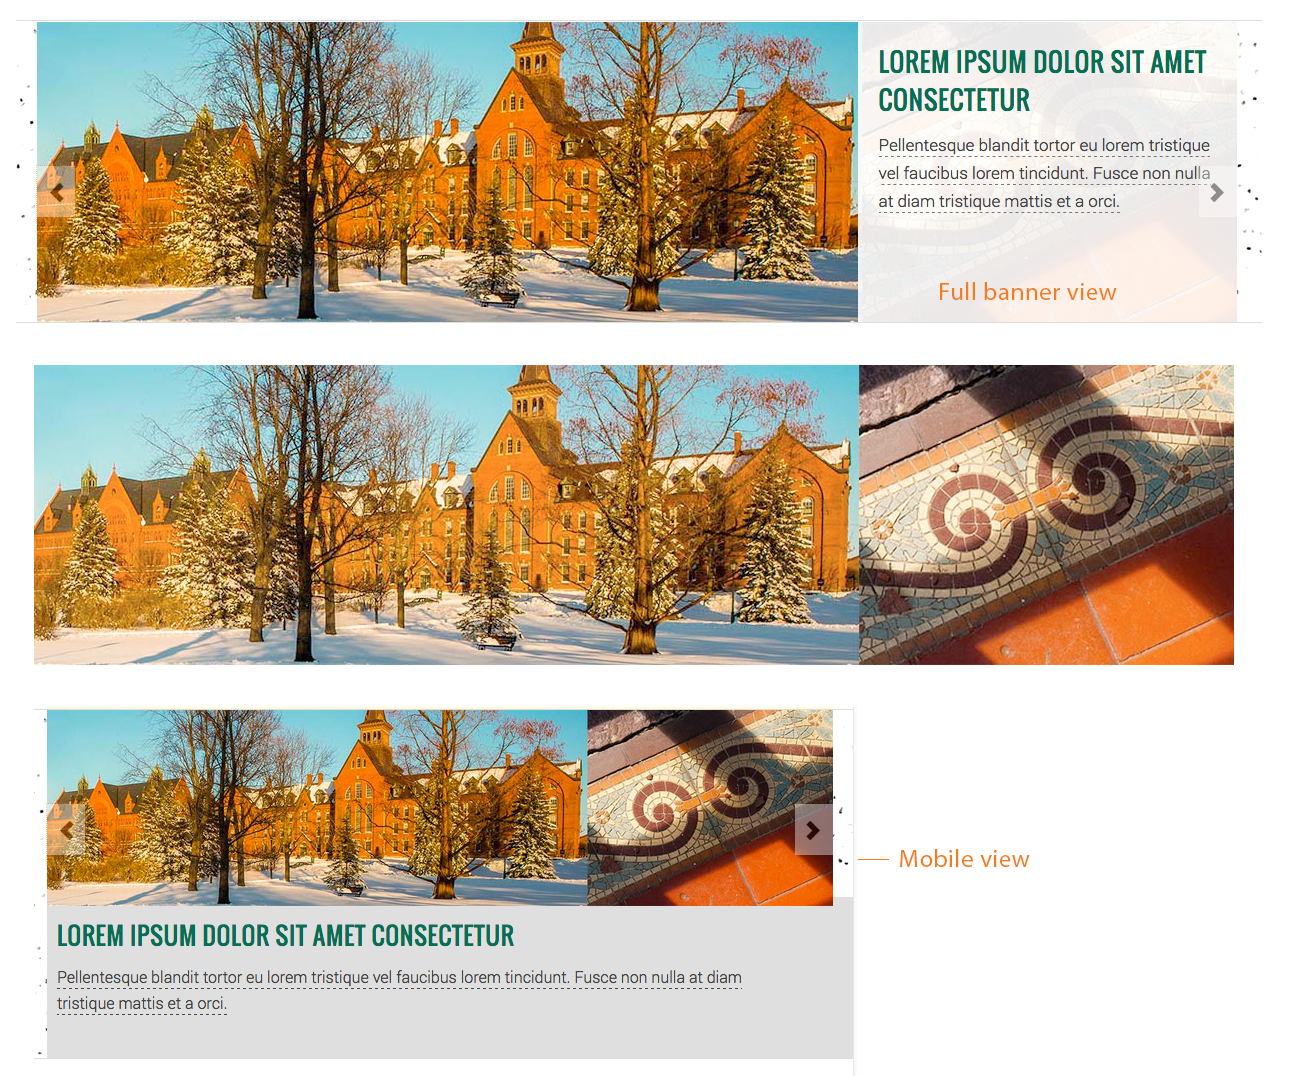 Example of a home page banner composed of 2 images that makes good use of an architectural texture under the caption area.